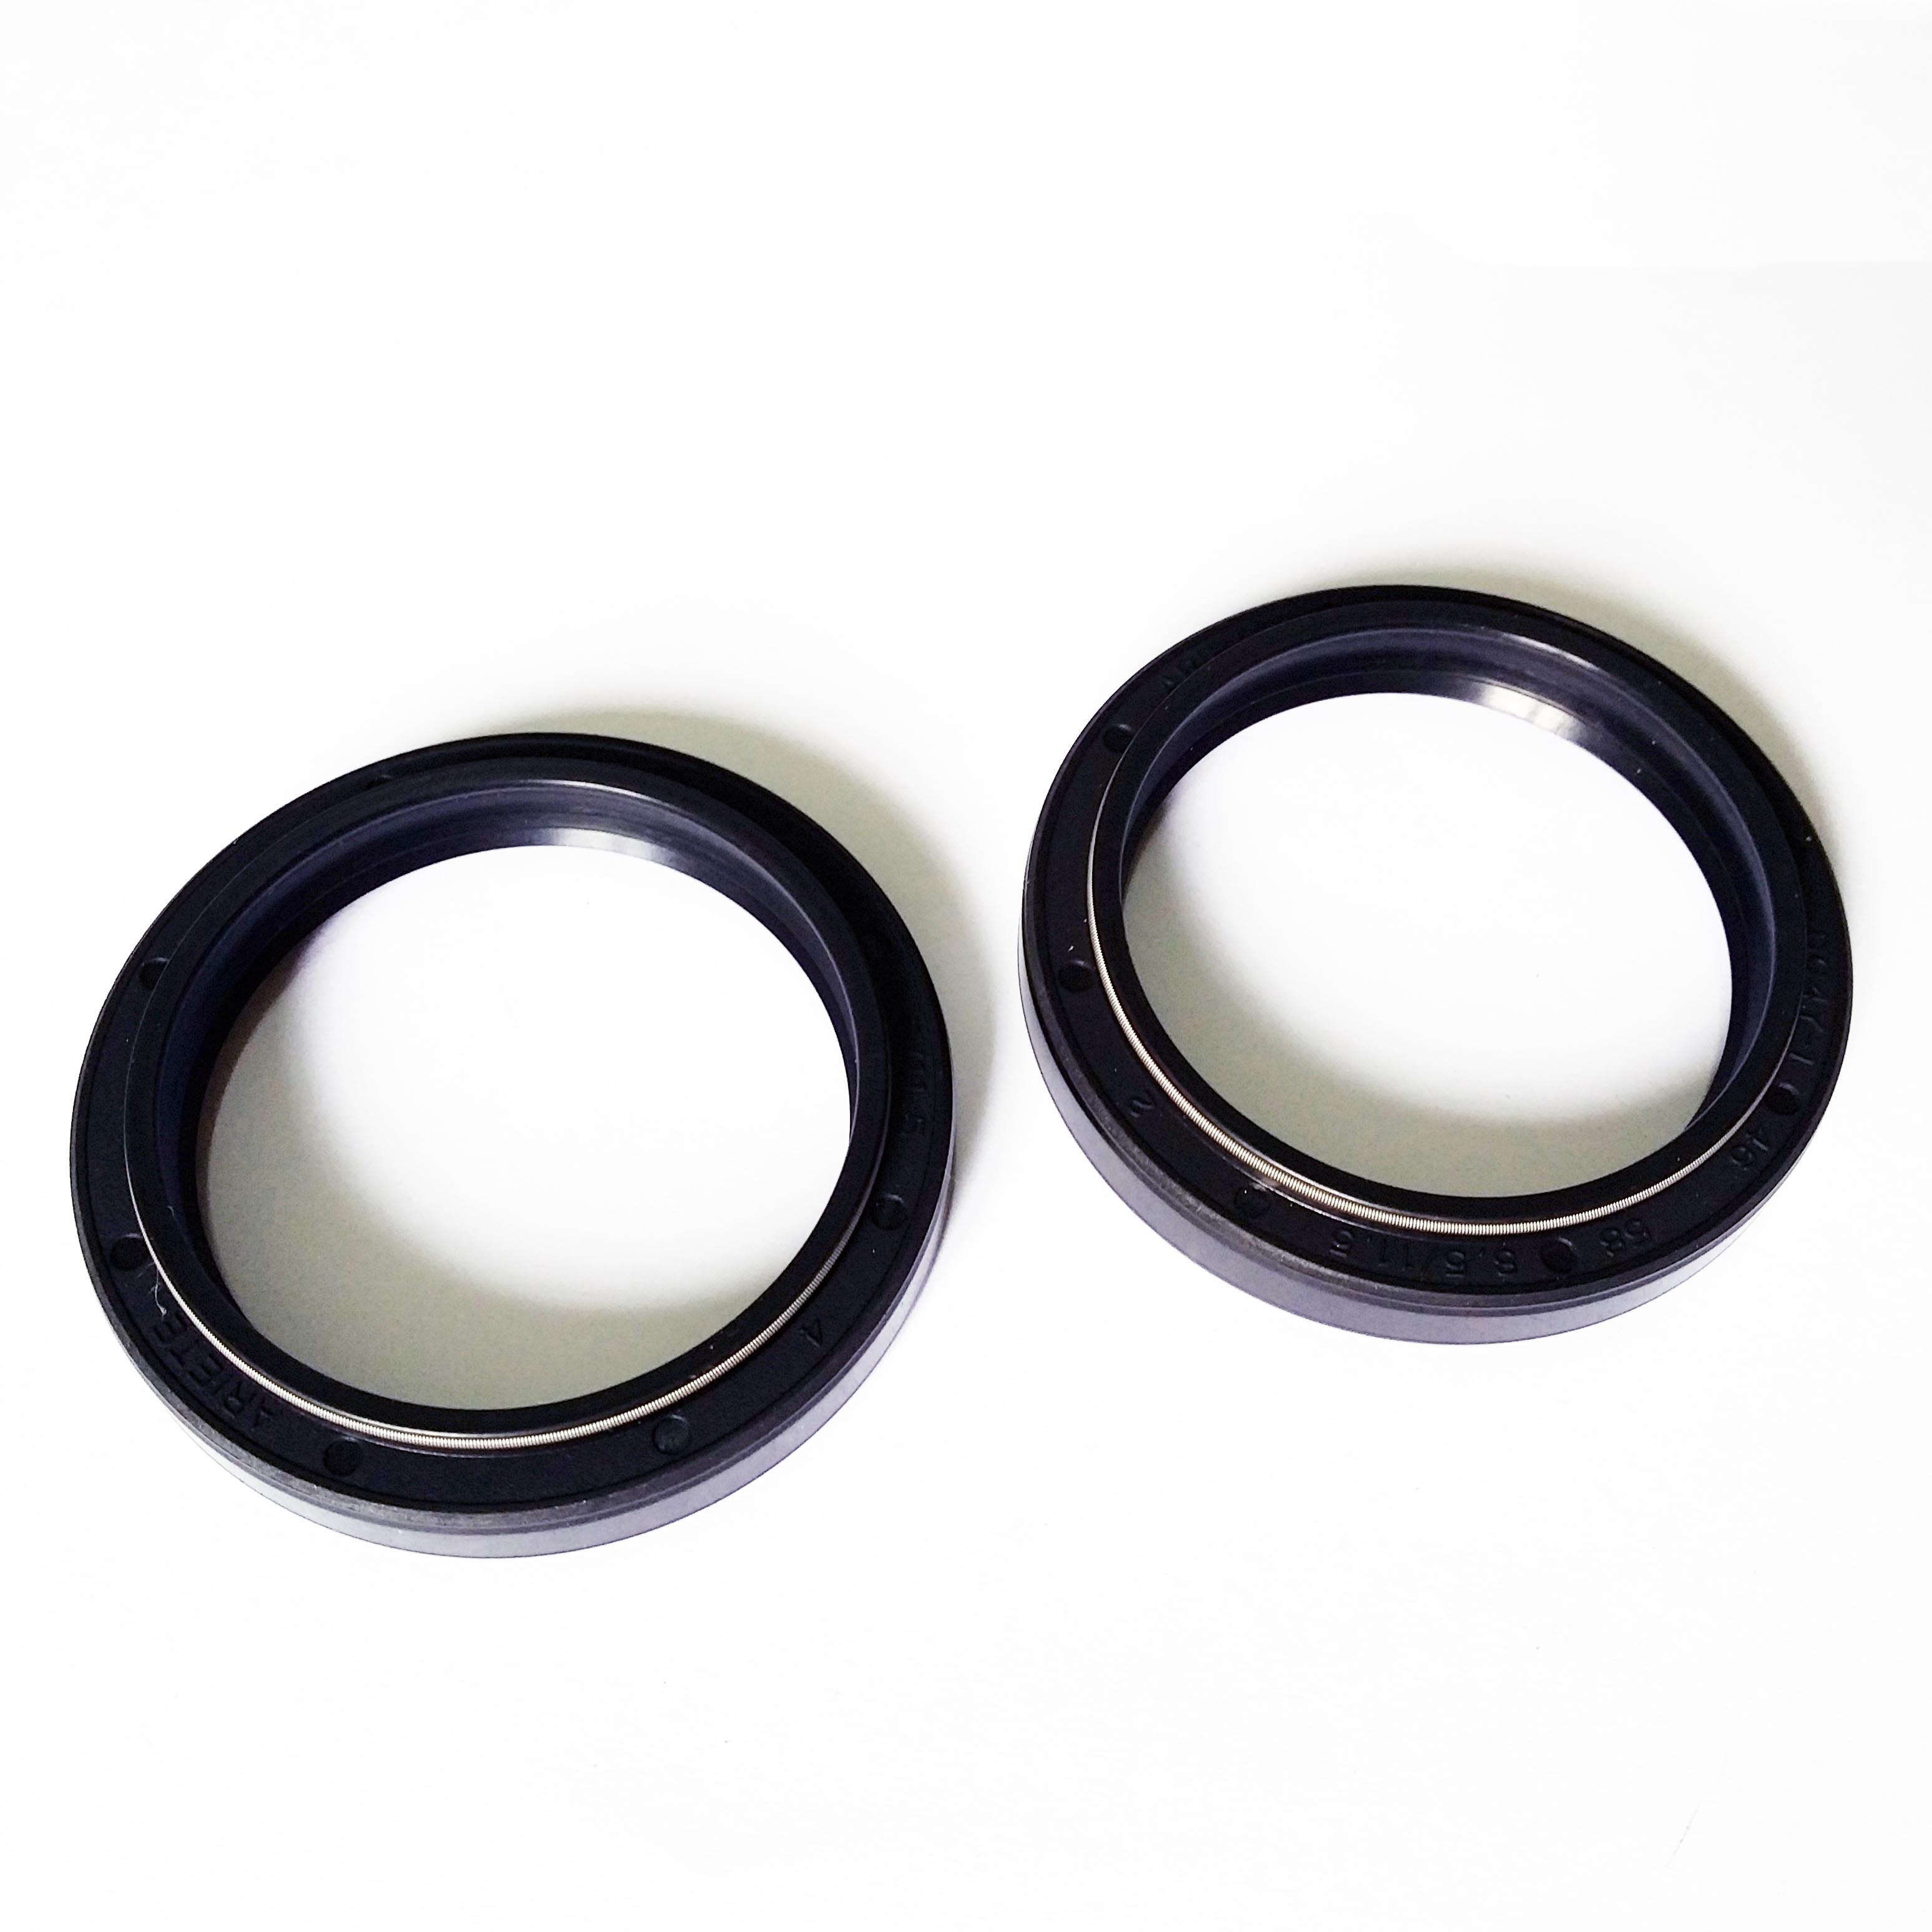 K-Tech Honda CR125 1989-1991 NOK Front Fork Oil Seals 45x57x11mm